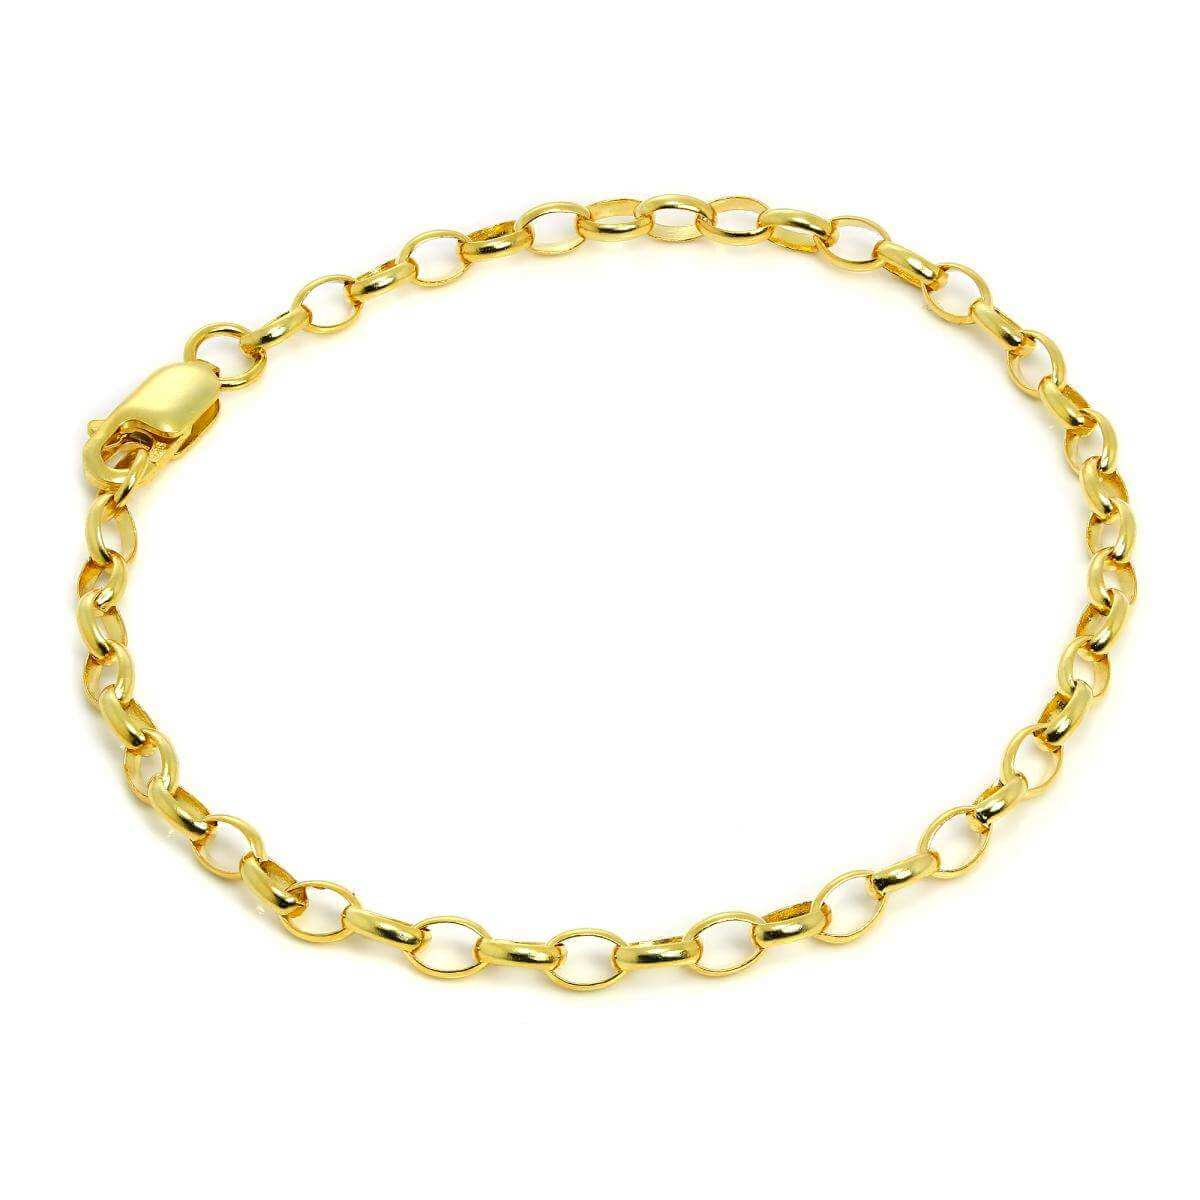 7 Inch Yellow Gold Plated Sterling Silver Belcher Chain Bracelet